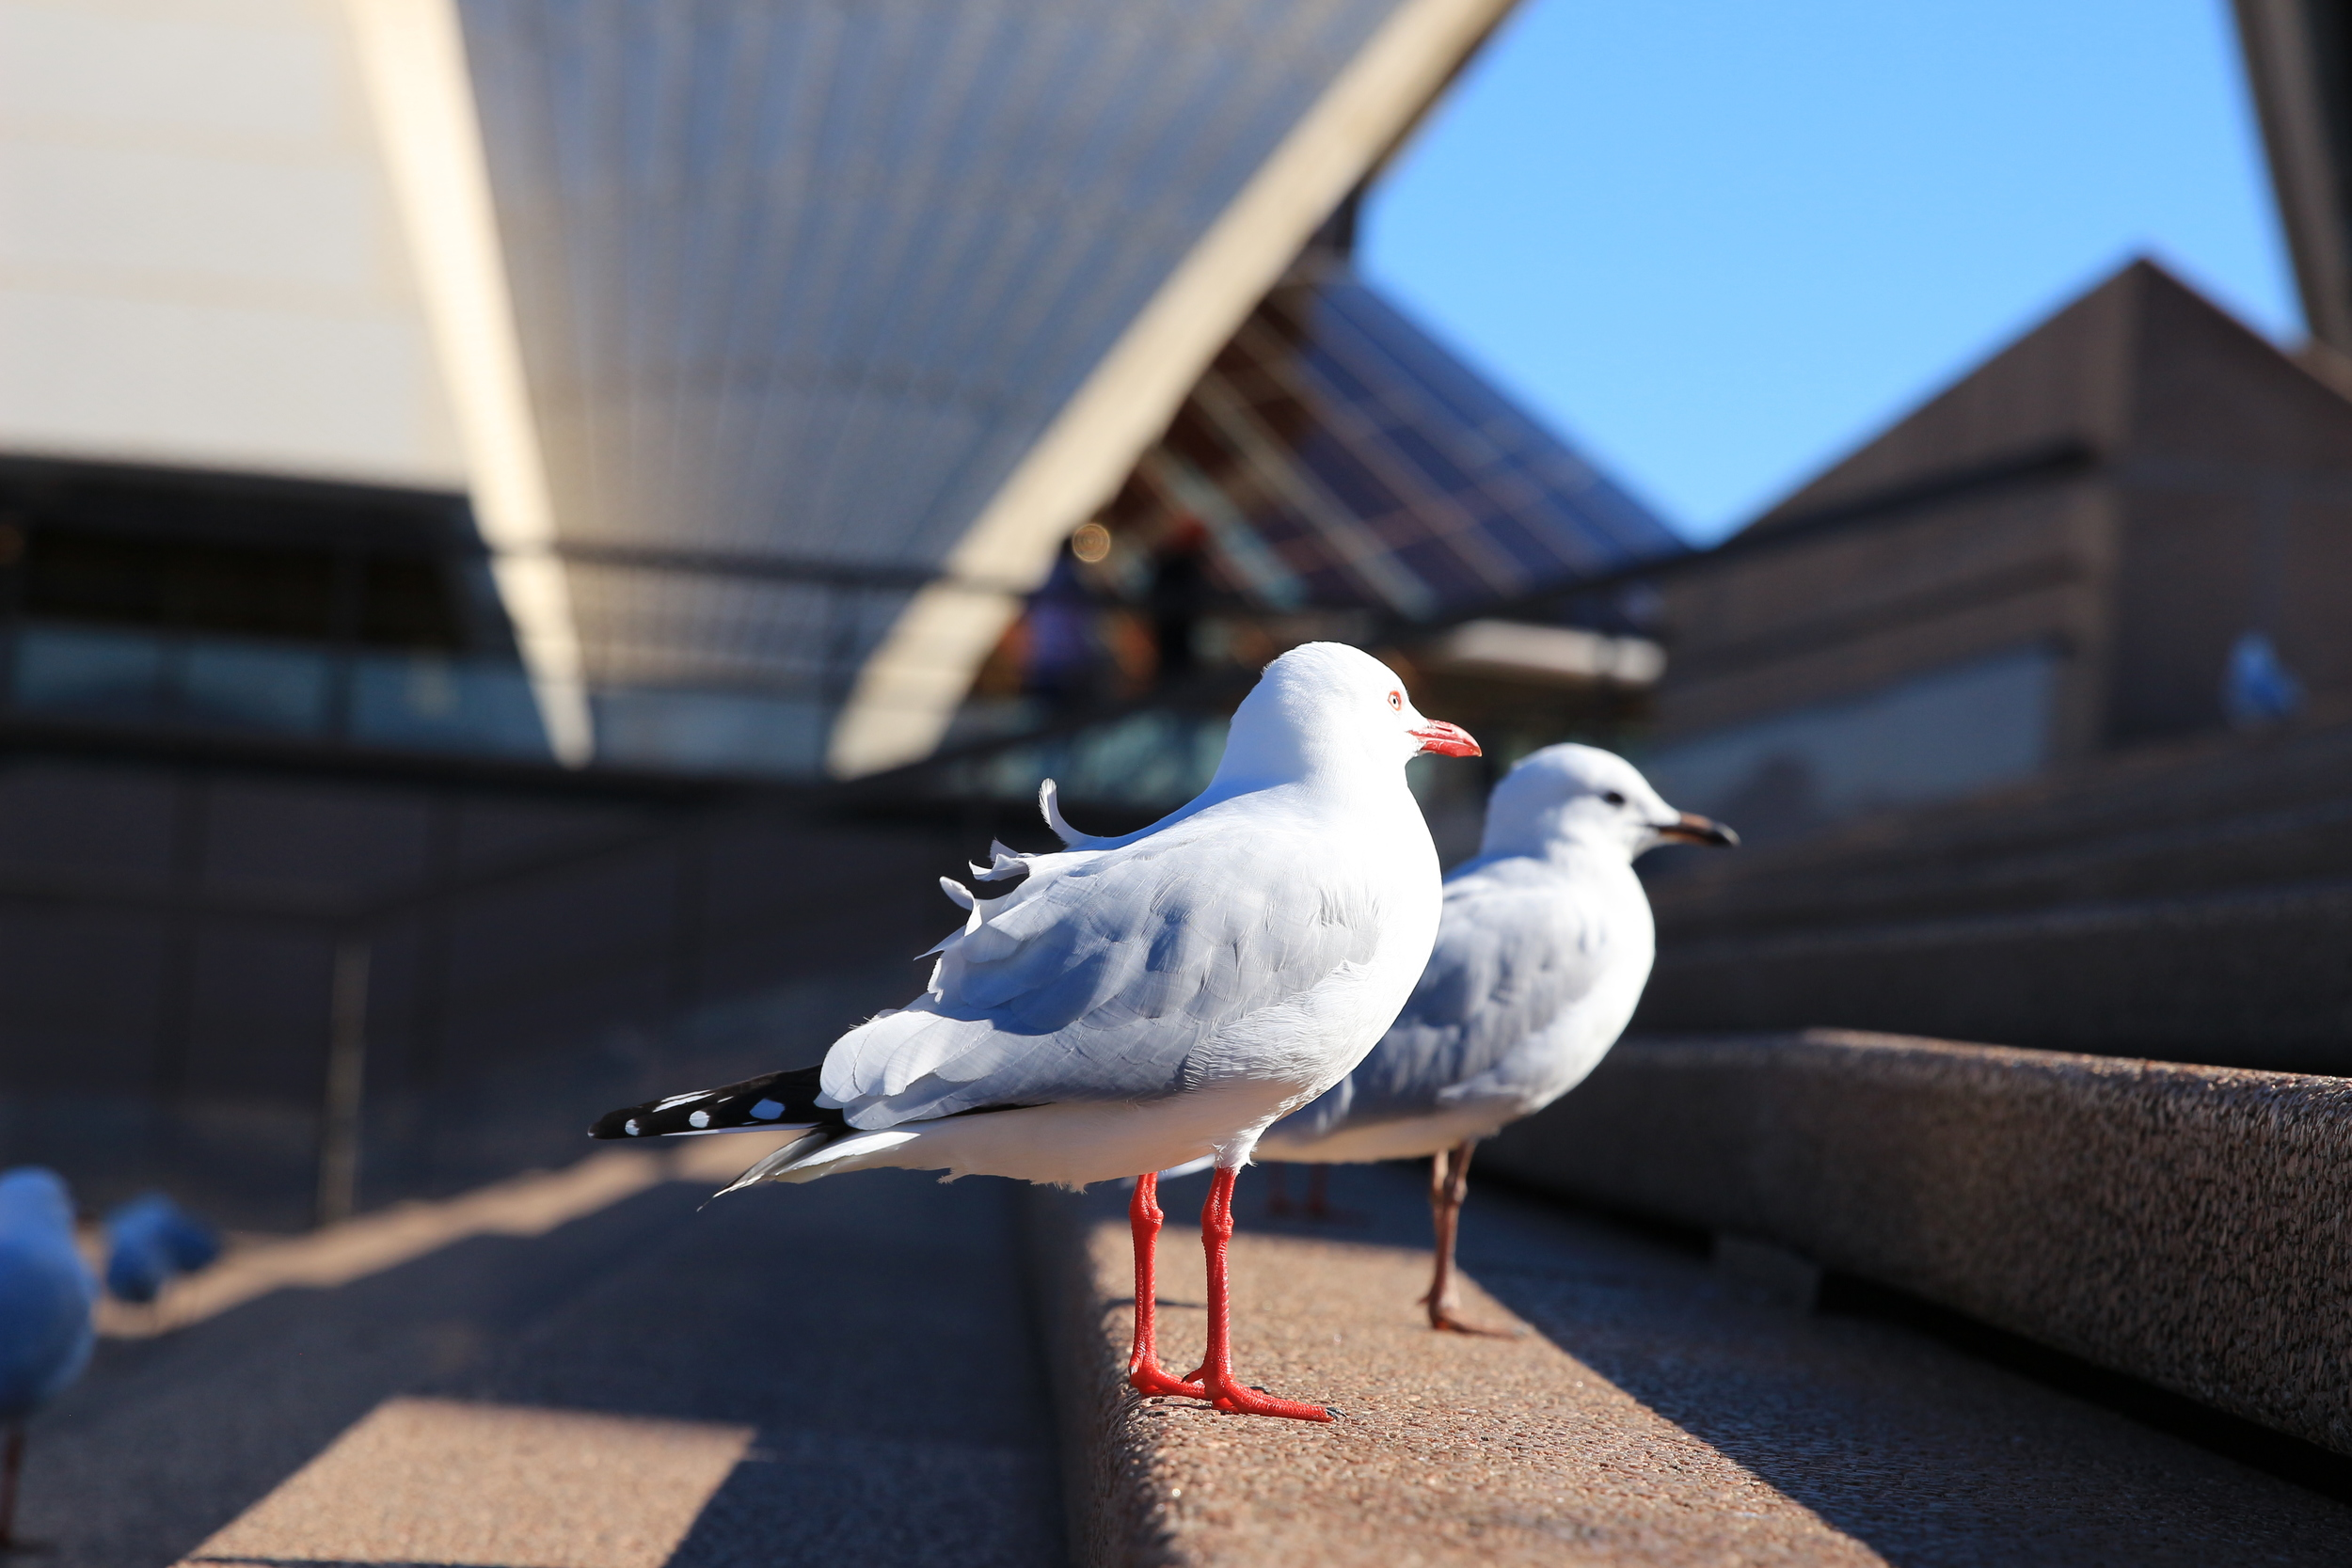 Loved how the feathers ruffled in the wind almost mimicking the opera house.